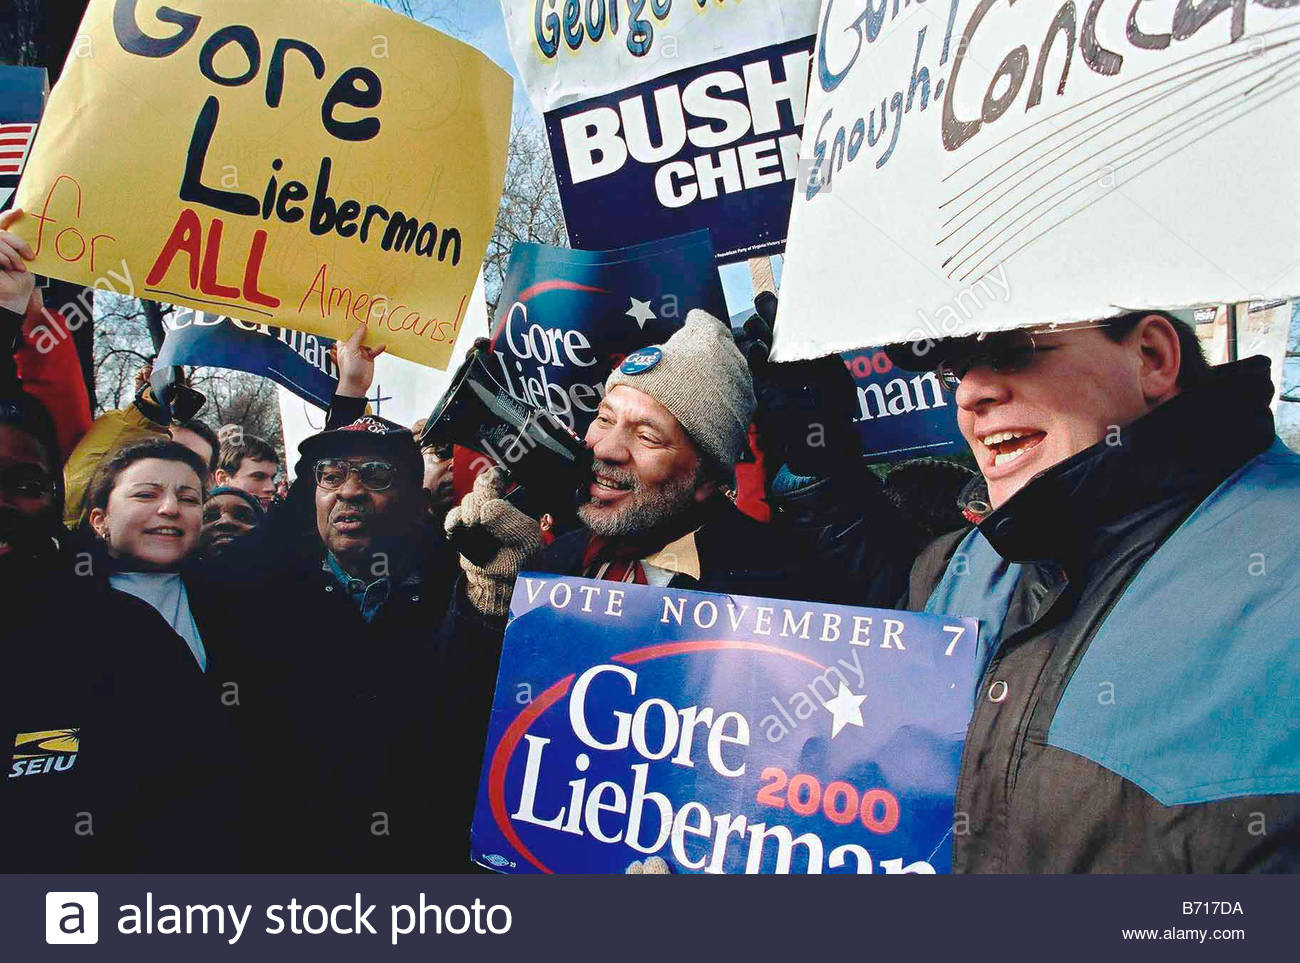 12 1 00 SUPREME COURT HEARING ON PRESIDENTIAL ELECTION Gore Lieberman supporters Isaac Long and Frank Wilds both - Stock Image